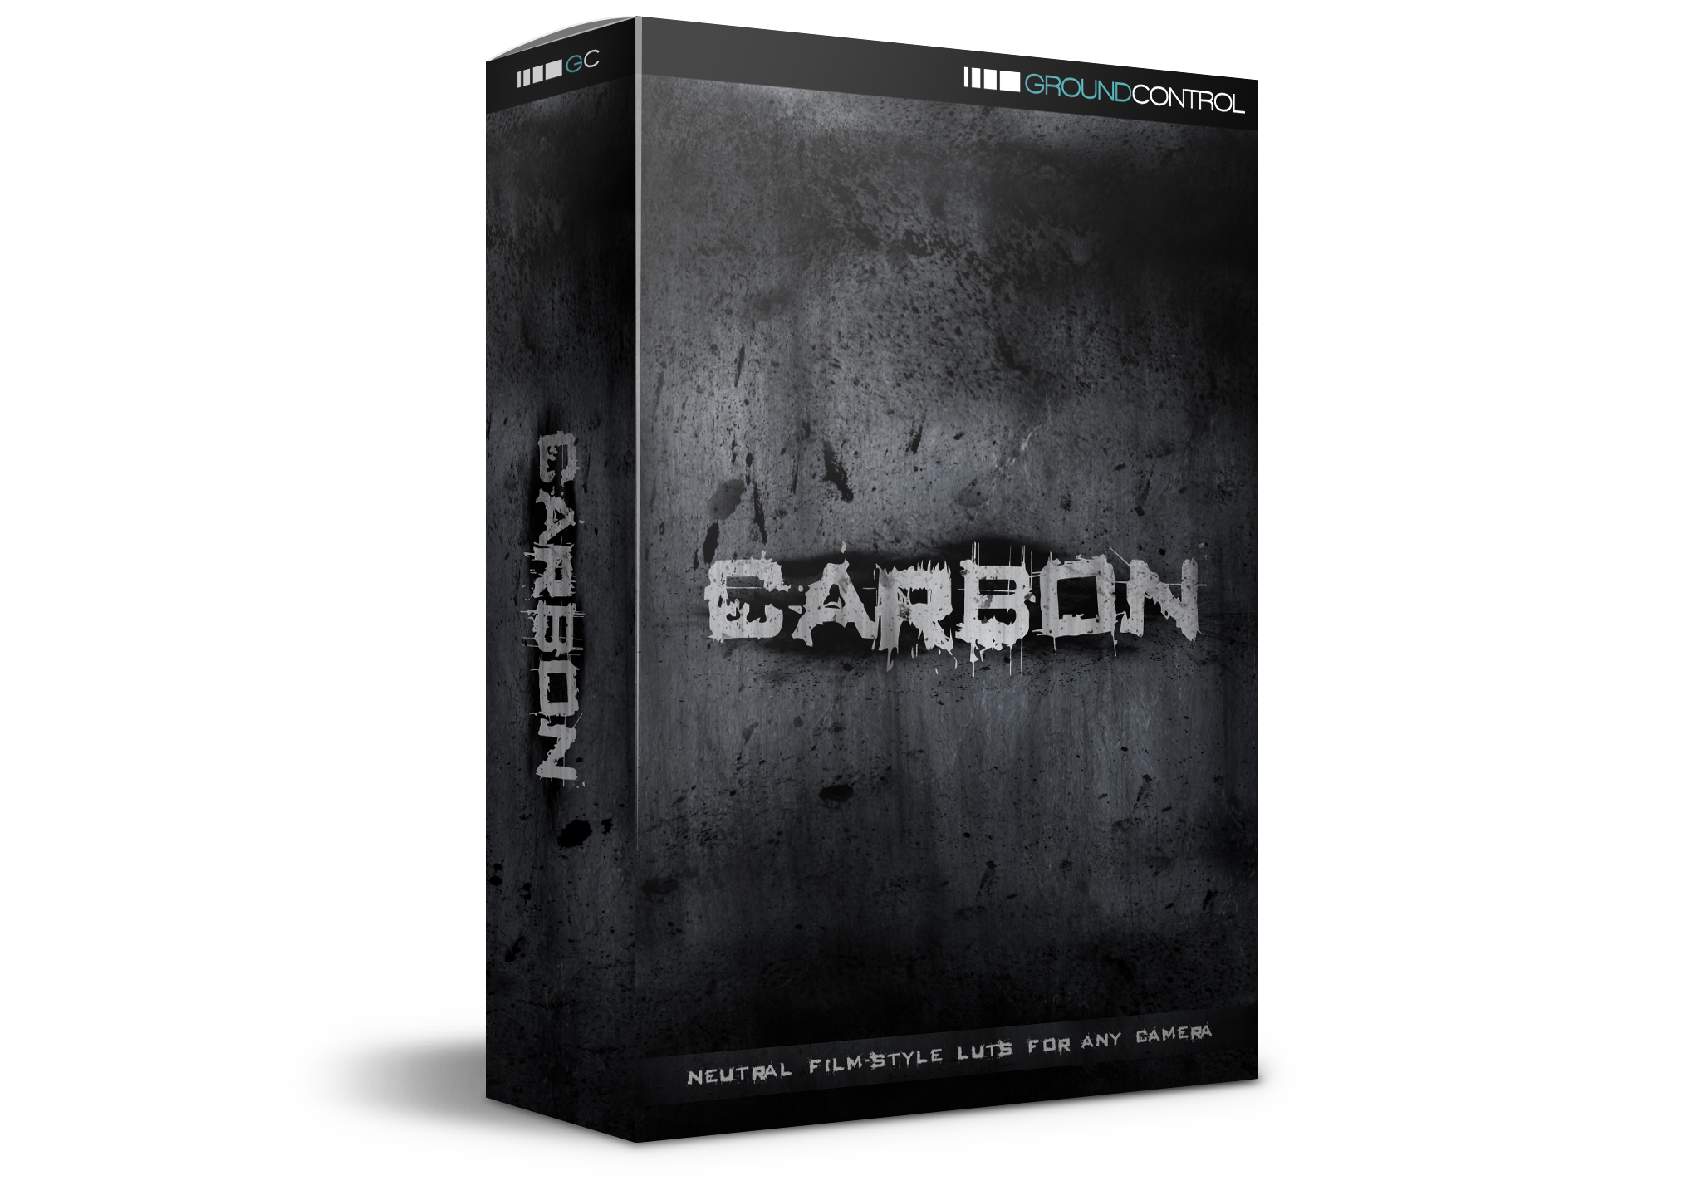 Carbon LUTs for Any Camera